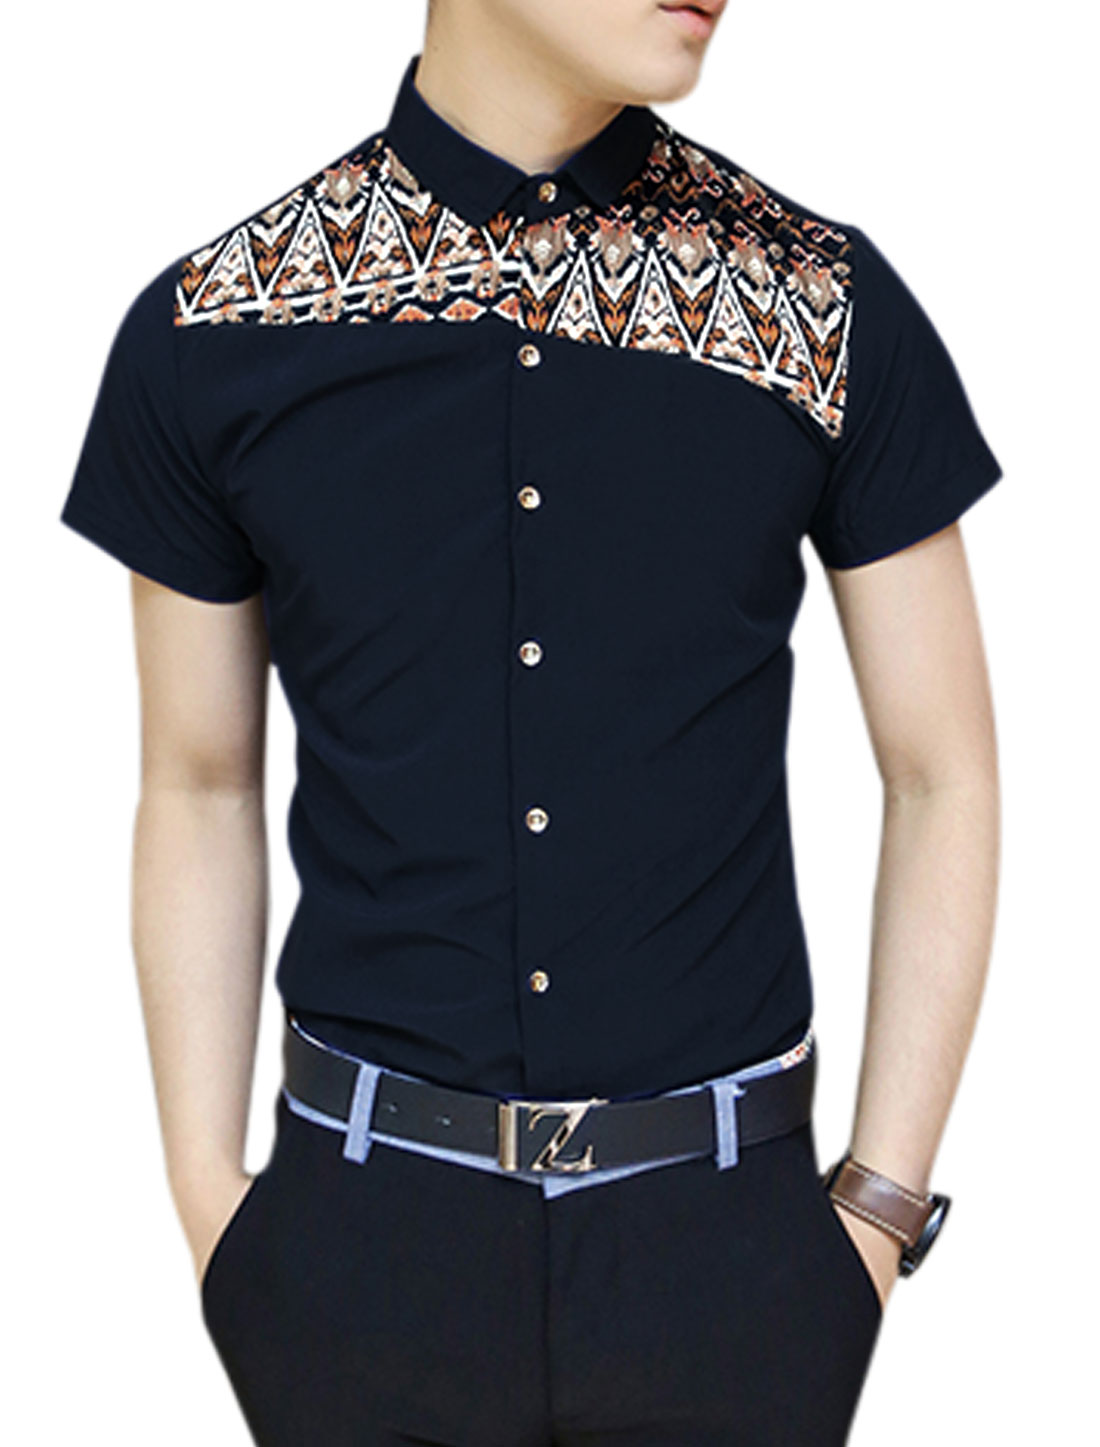 Men Button Closure Novelty Prints Panel Design Shirt Navy Blue S